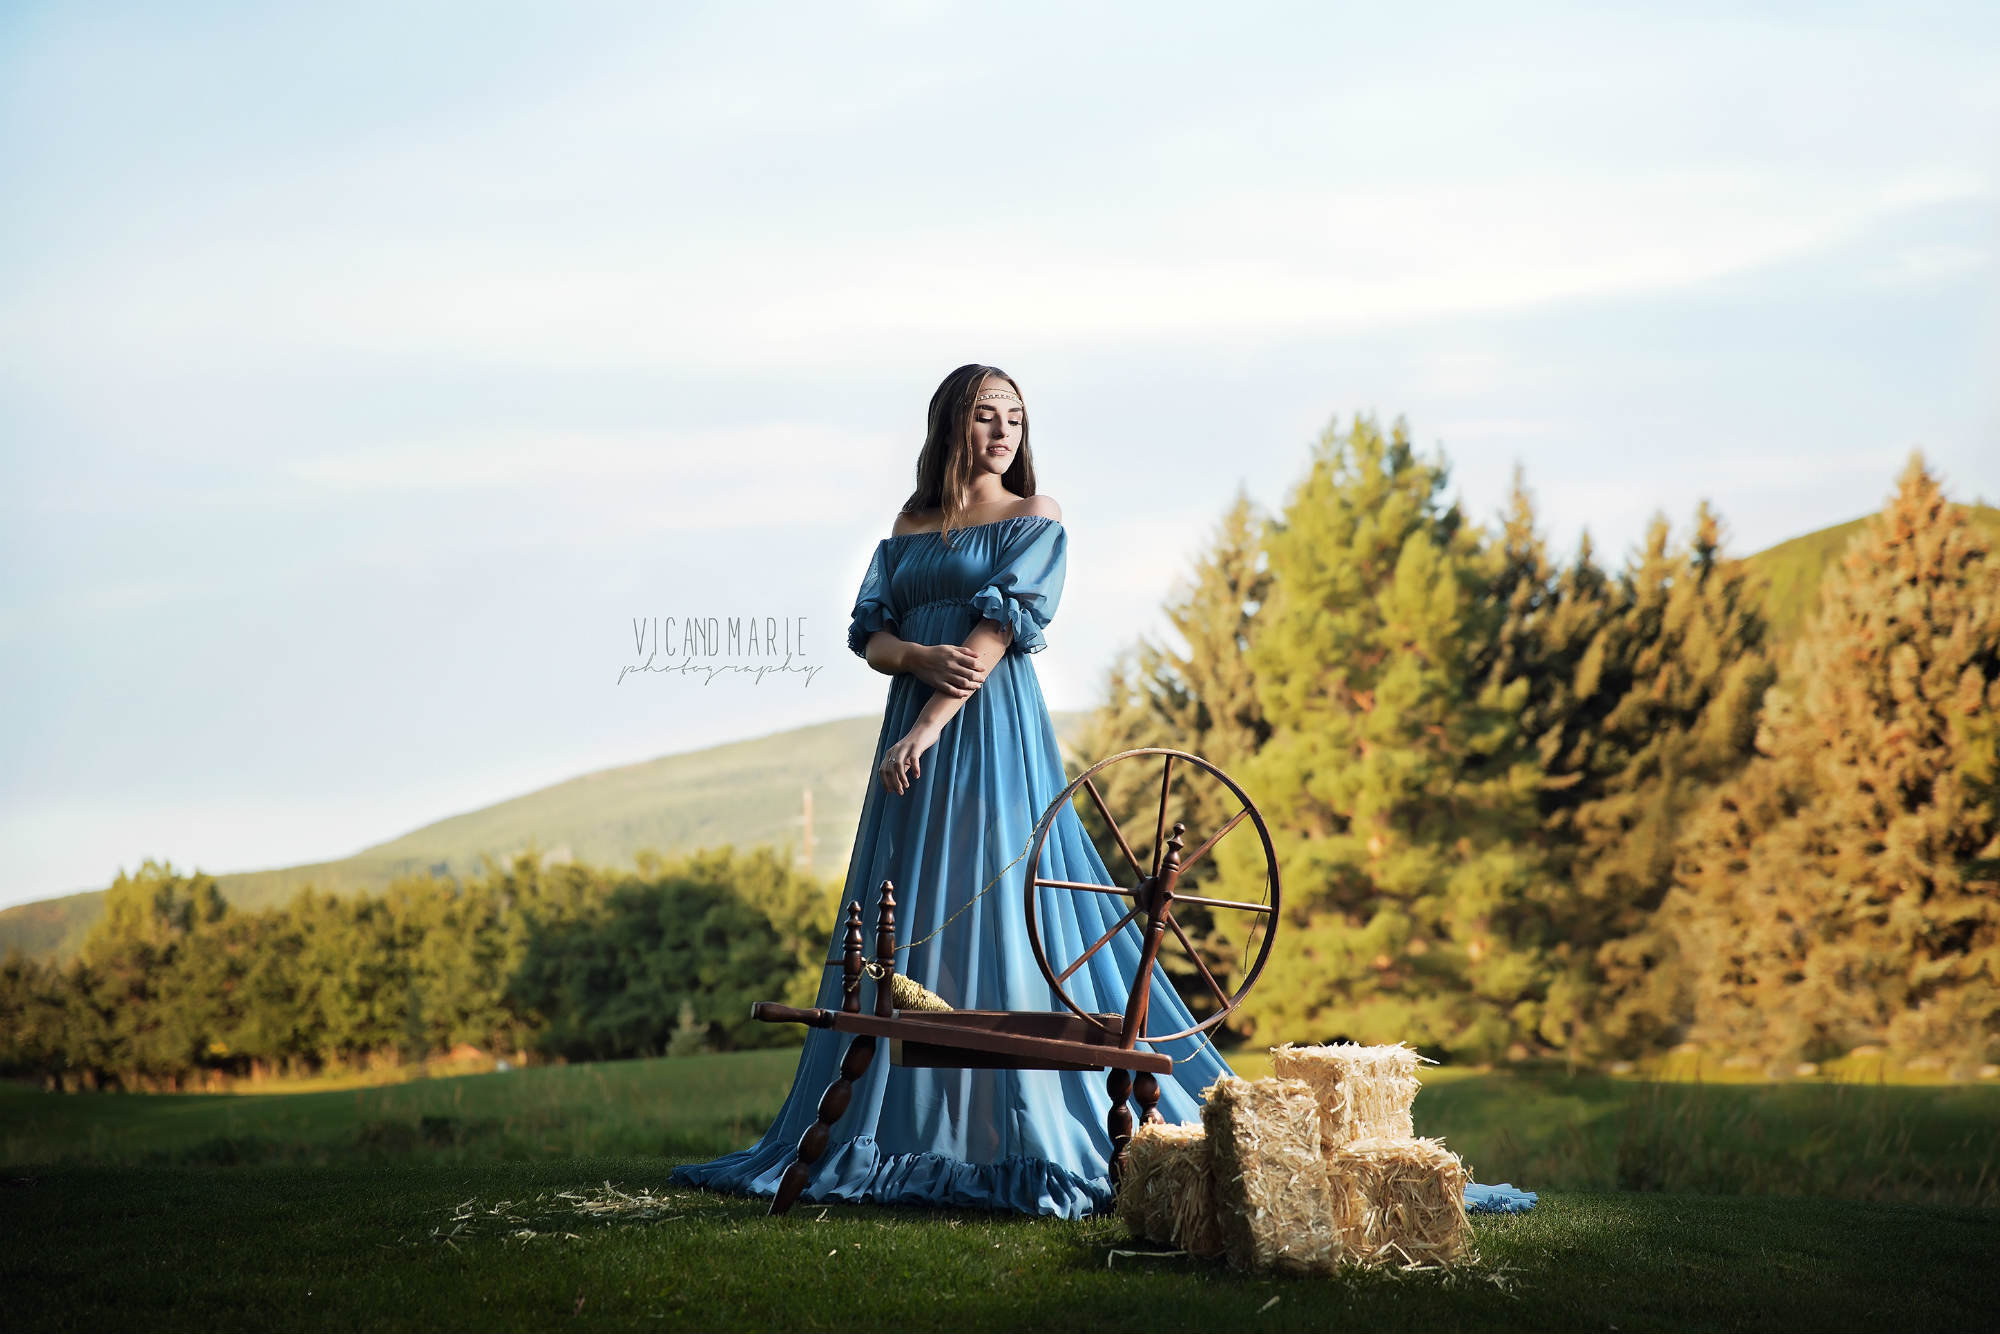 nonmaternity paulina steel blue fitted slip vic and marie 2 web res rumplestiltskin sew trendy retreat 2017 se